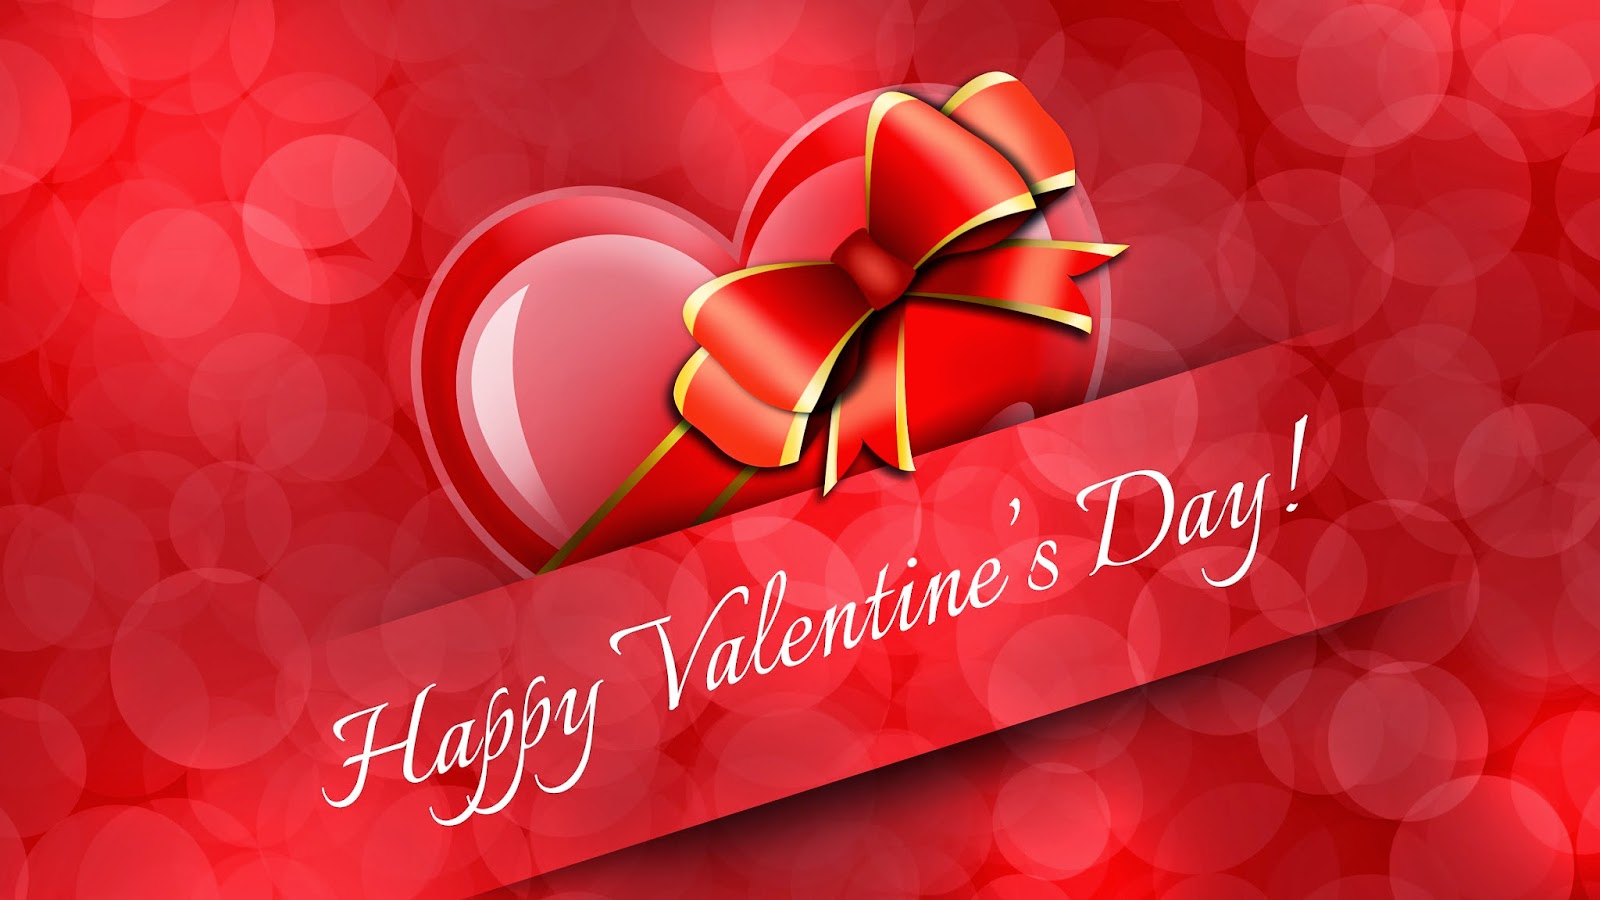 Happy Valentine Day 2015 Quotes Wishes Messages Poems Cards – Happy Valentines Day 2015 Cards